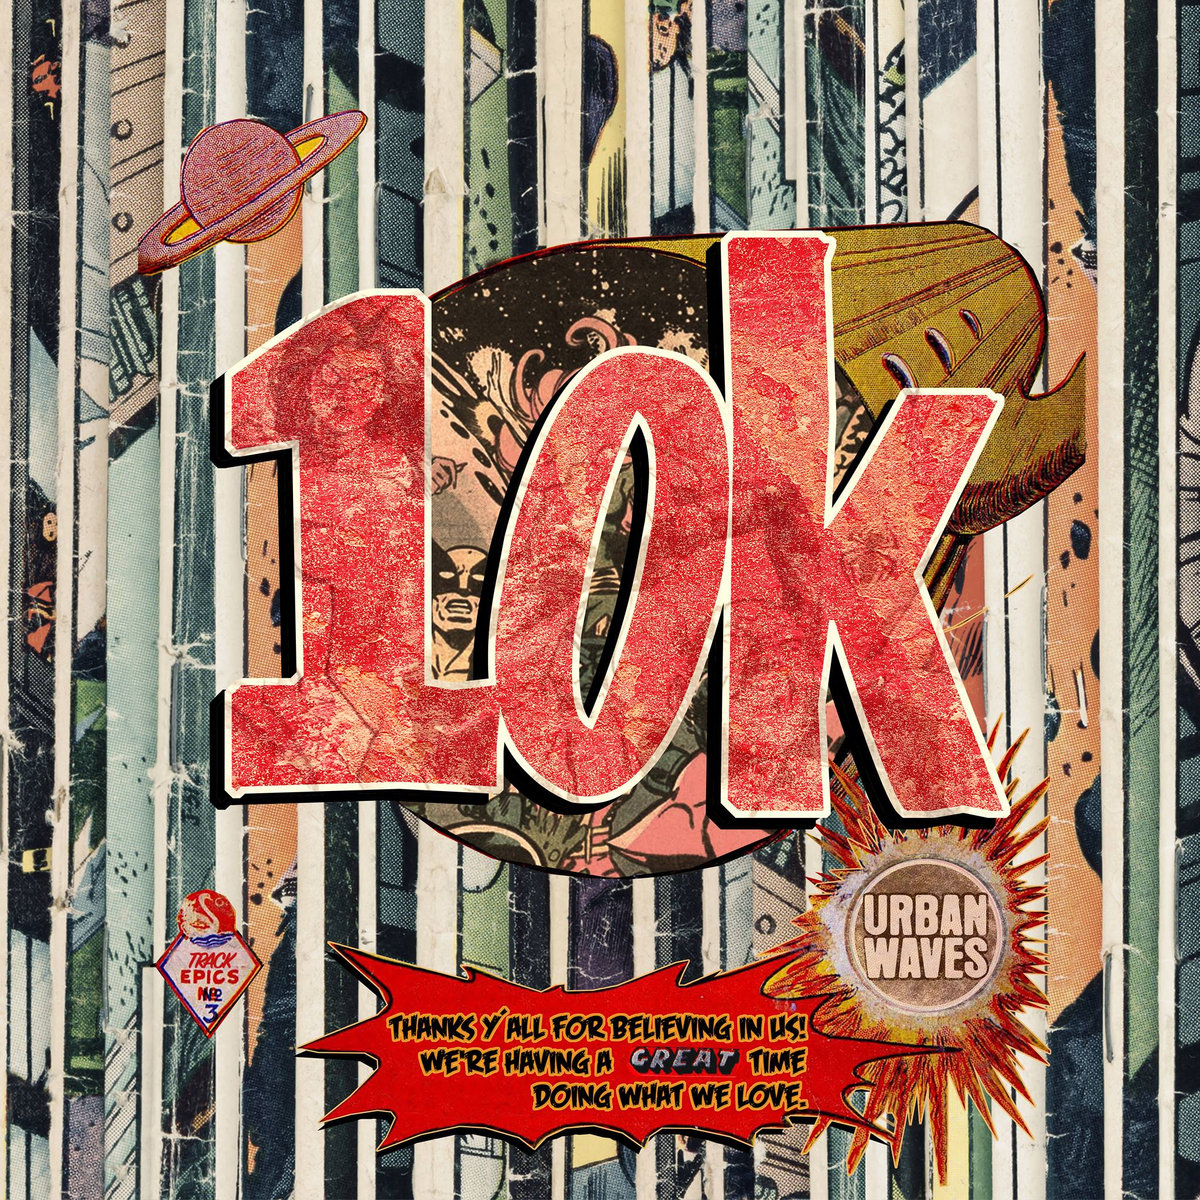 Free Download: 10k Urban Waves Records Compilation